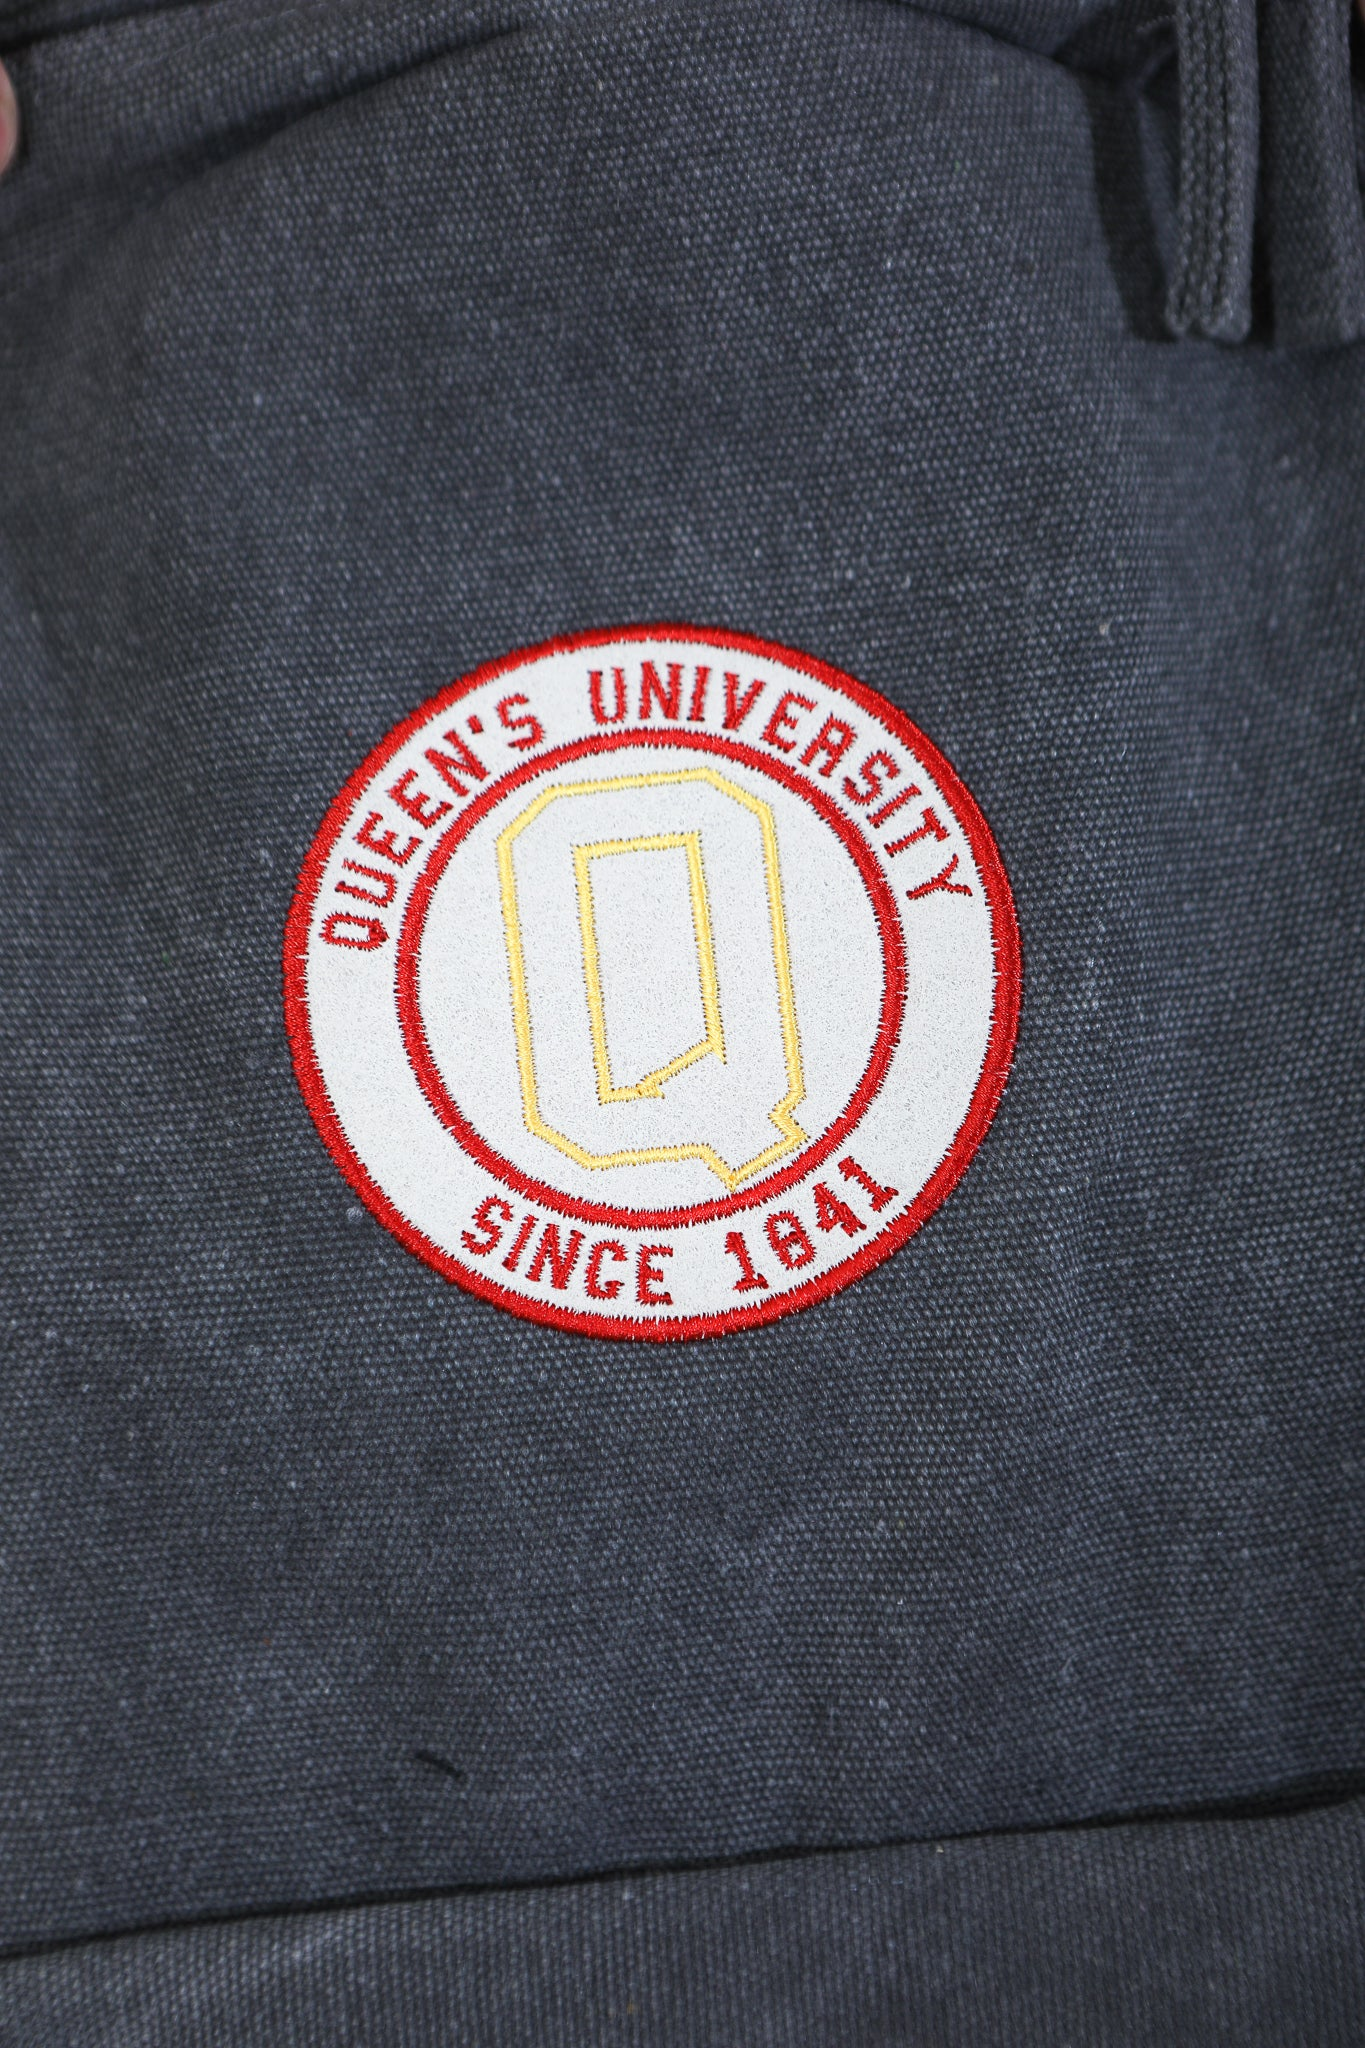 Close up of grey backpack with circular Queens logo